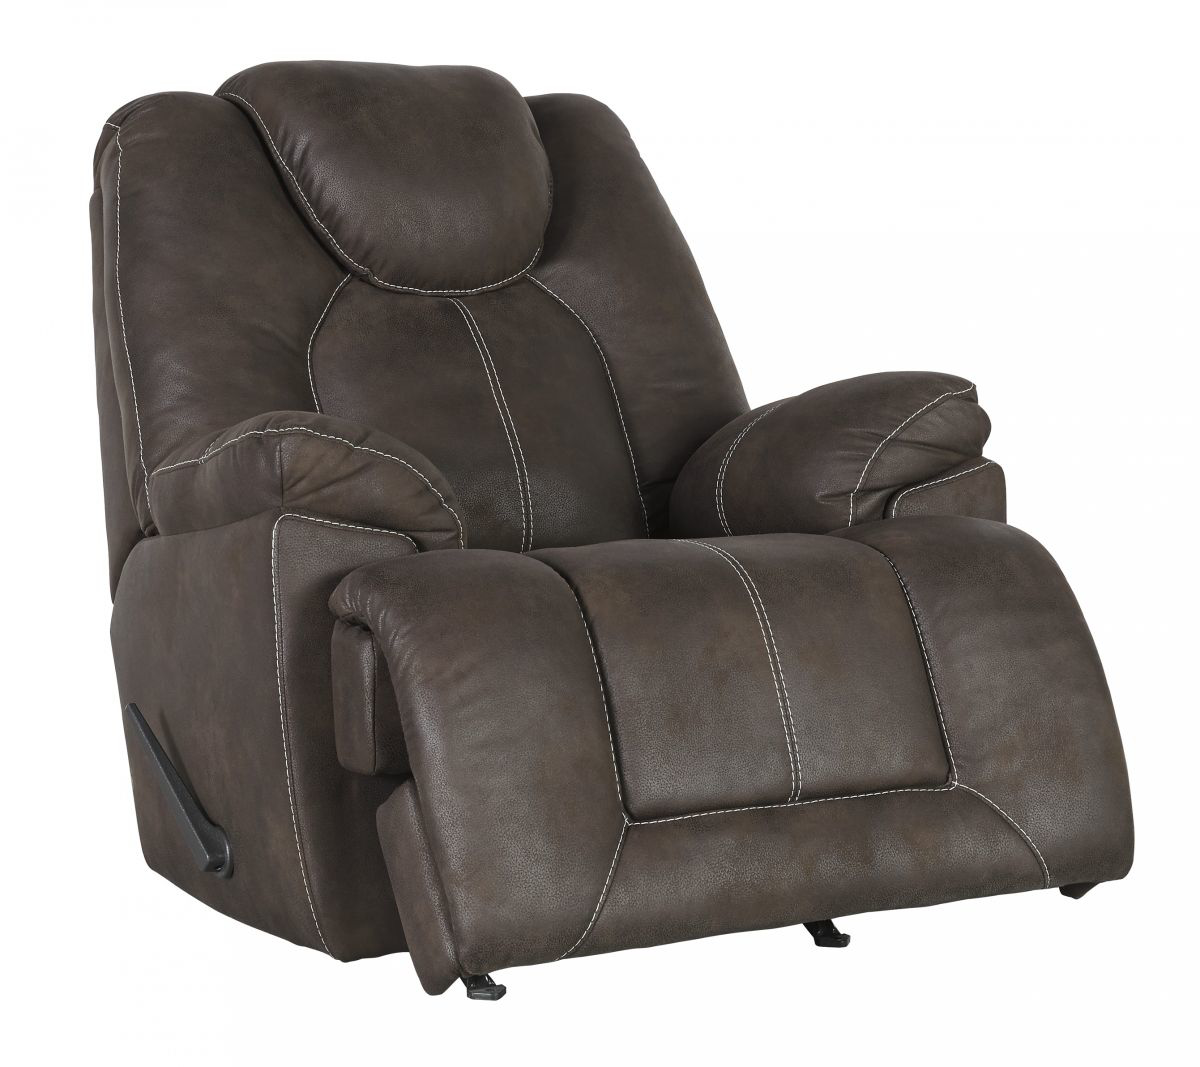 Picture of Warrior Fortress Recliner